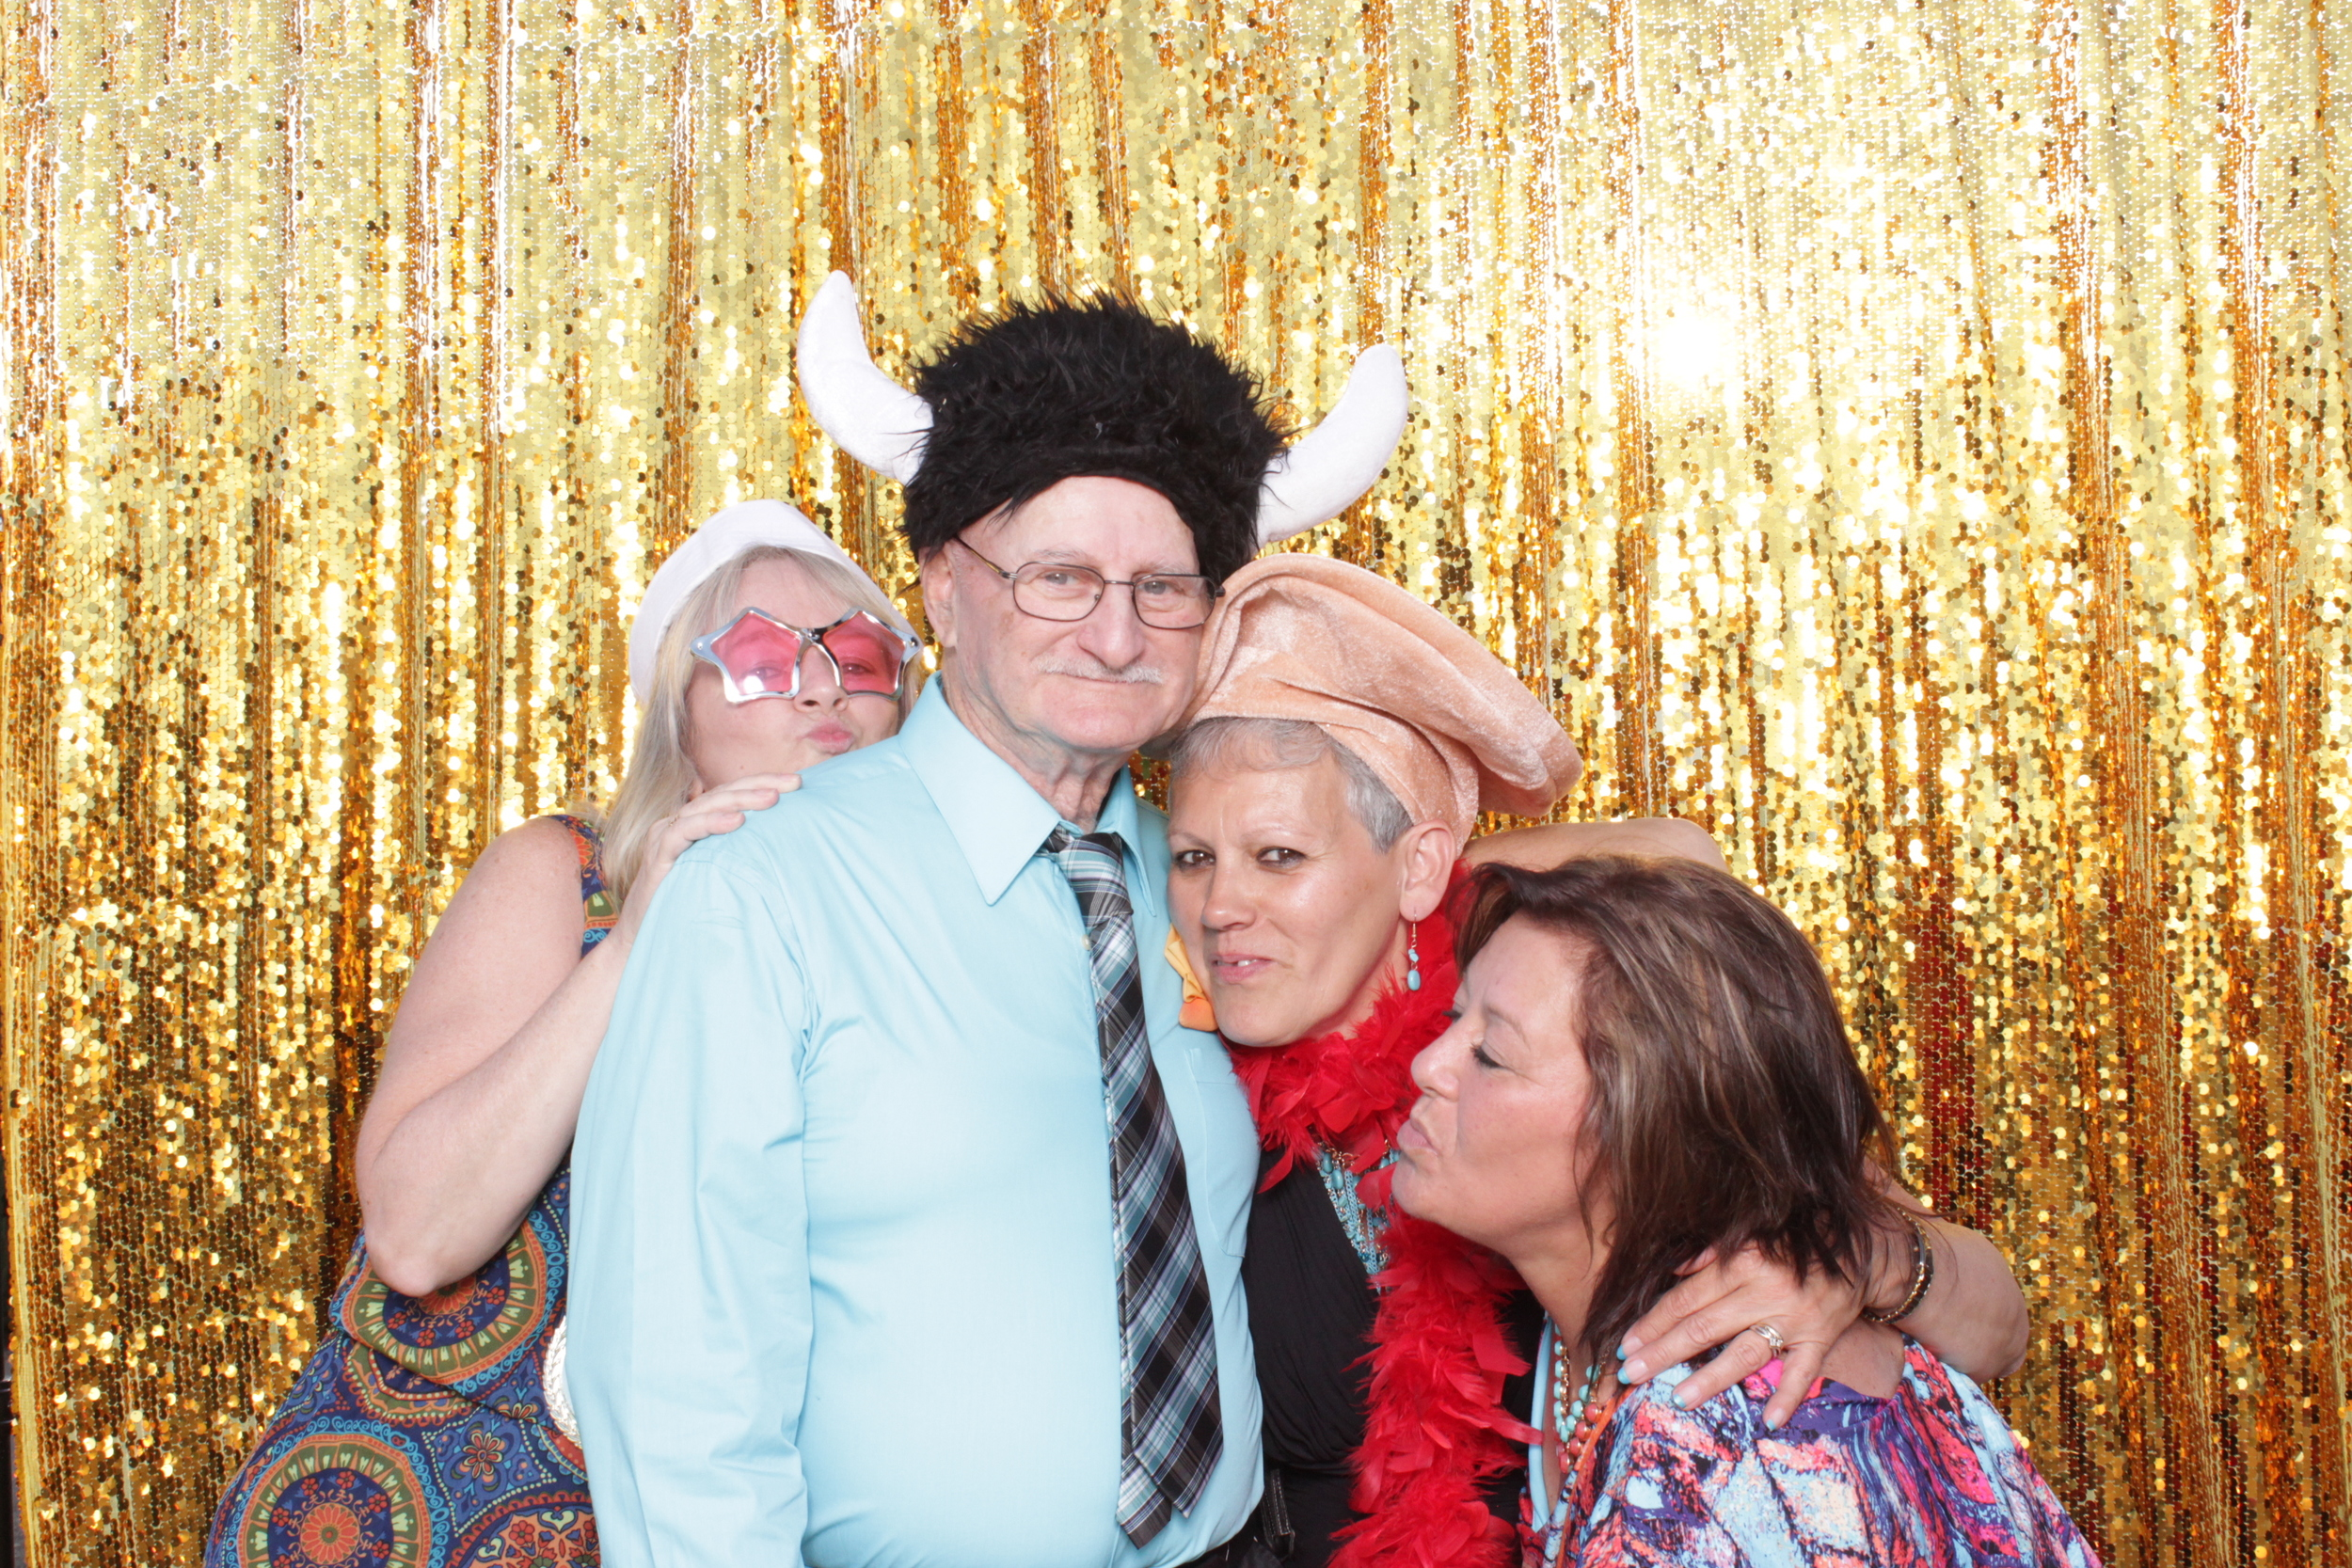 durham-photo-booth-rental-chico